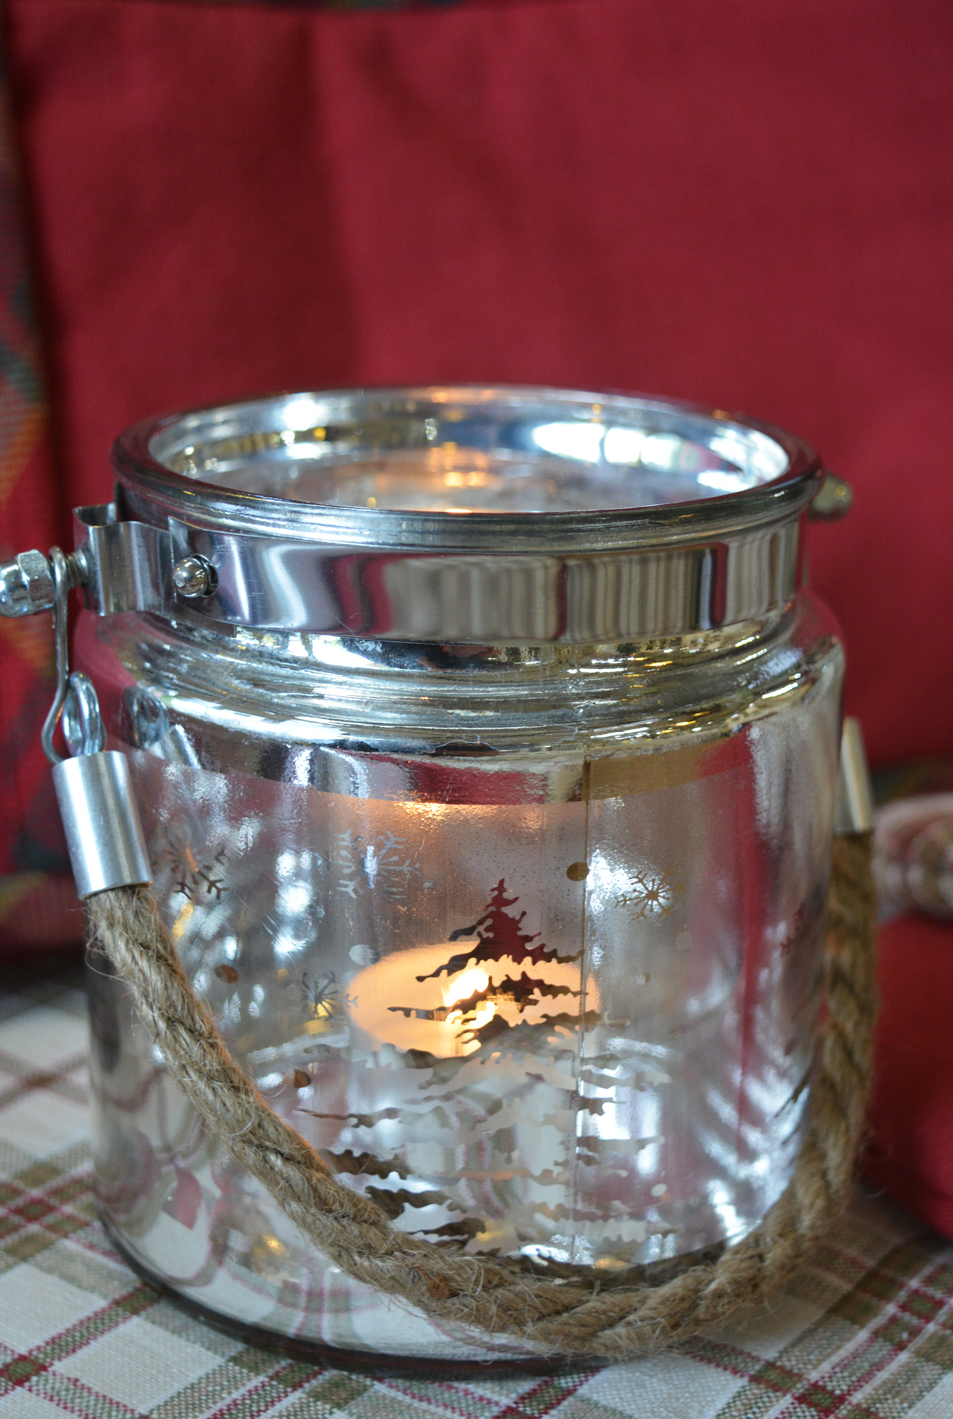 Tree and Reindeer Jar Candle Holder €7.50